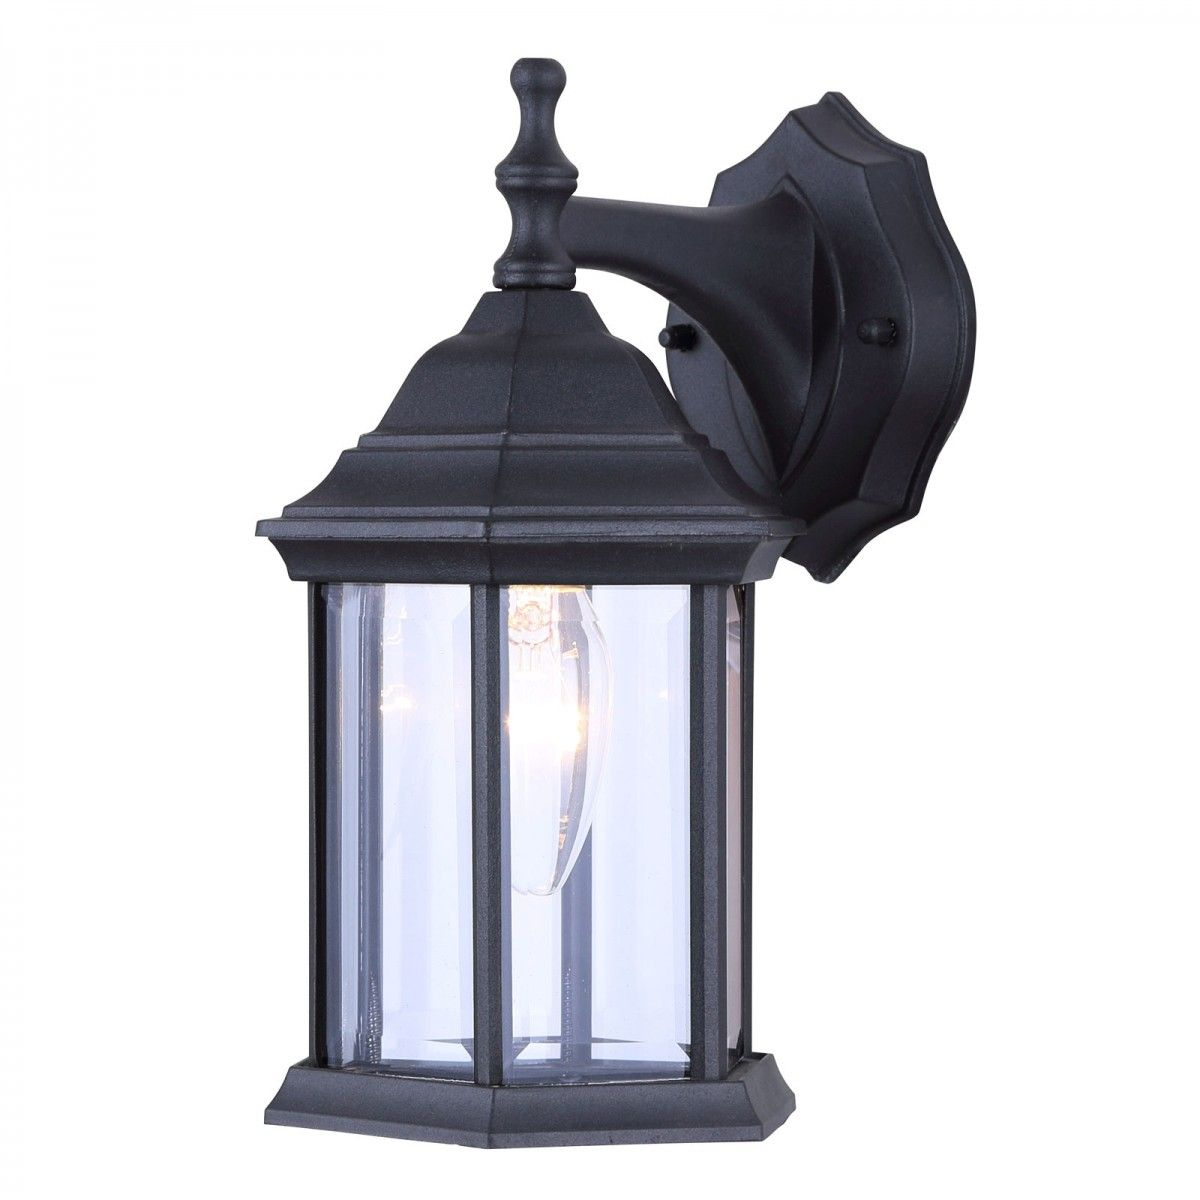 Outdoor Residential Lighting Fixtures Canarm iol4bk exterior wall lantern light fixture outdoor sconce canarm iol4bk exterior wall lantern light fixture outdoor sconce matte black exterior lights residential lighting workwithnaturefo